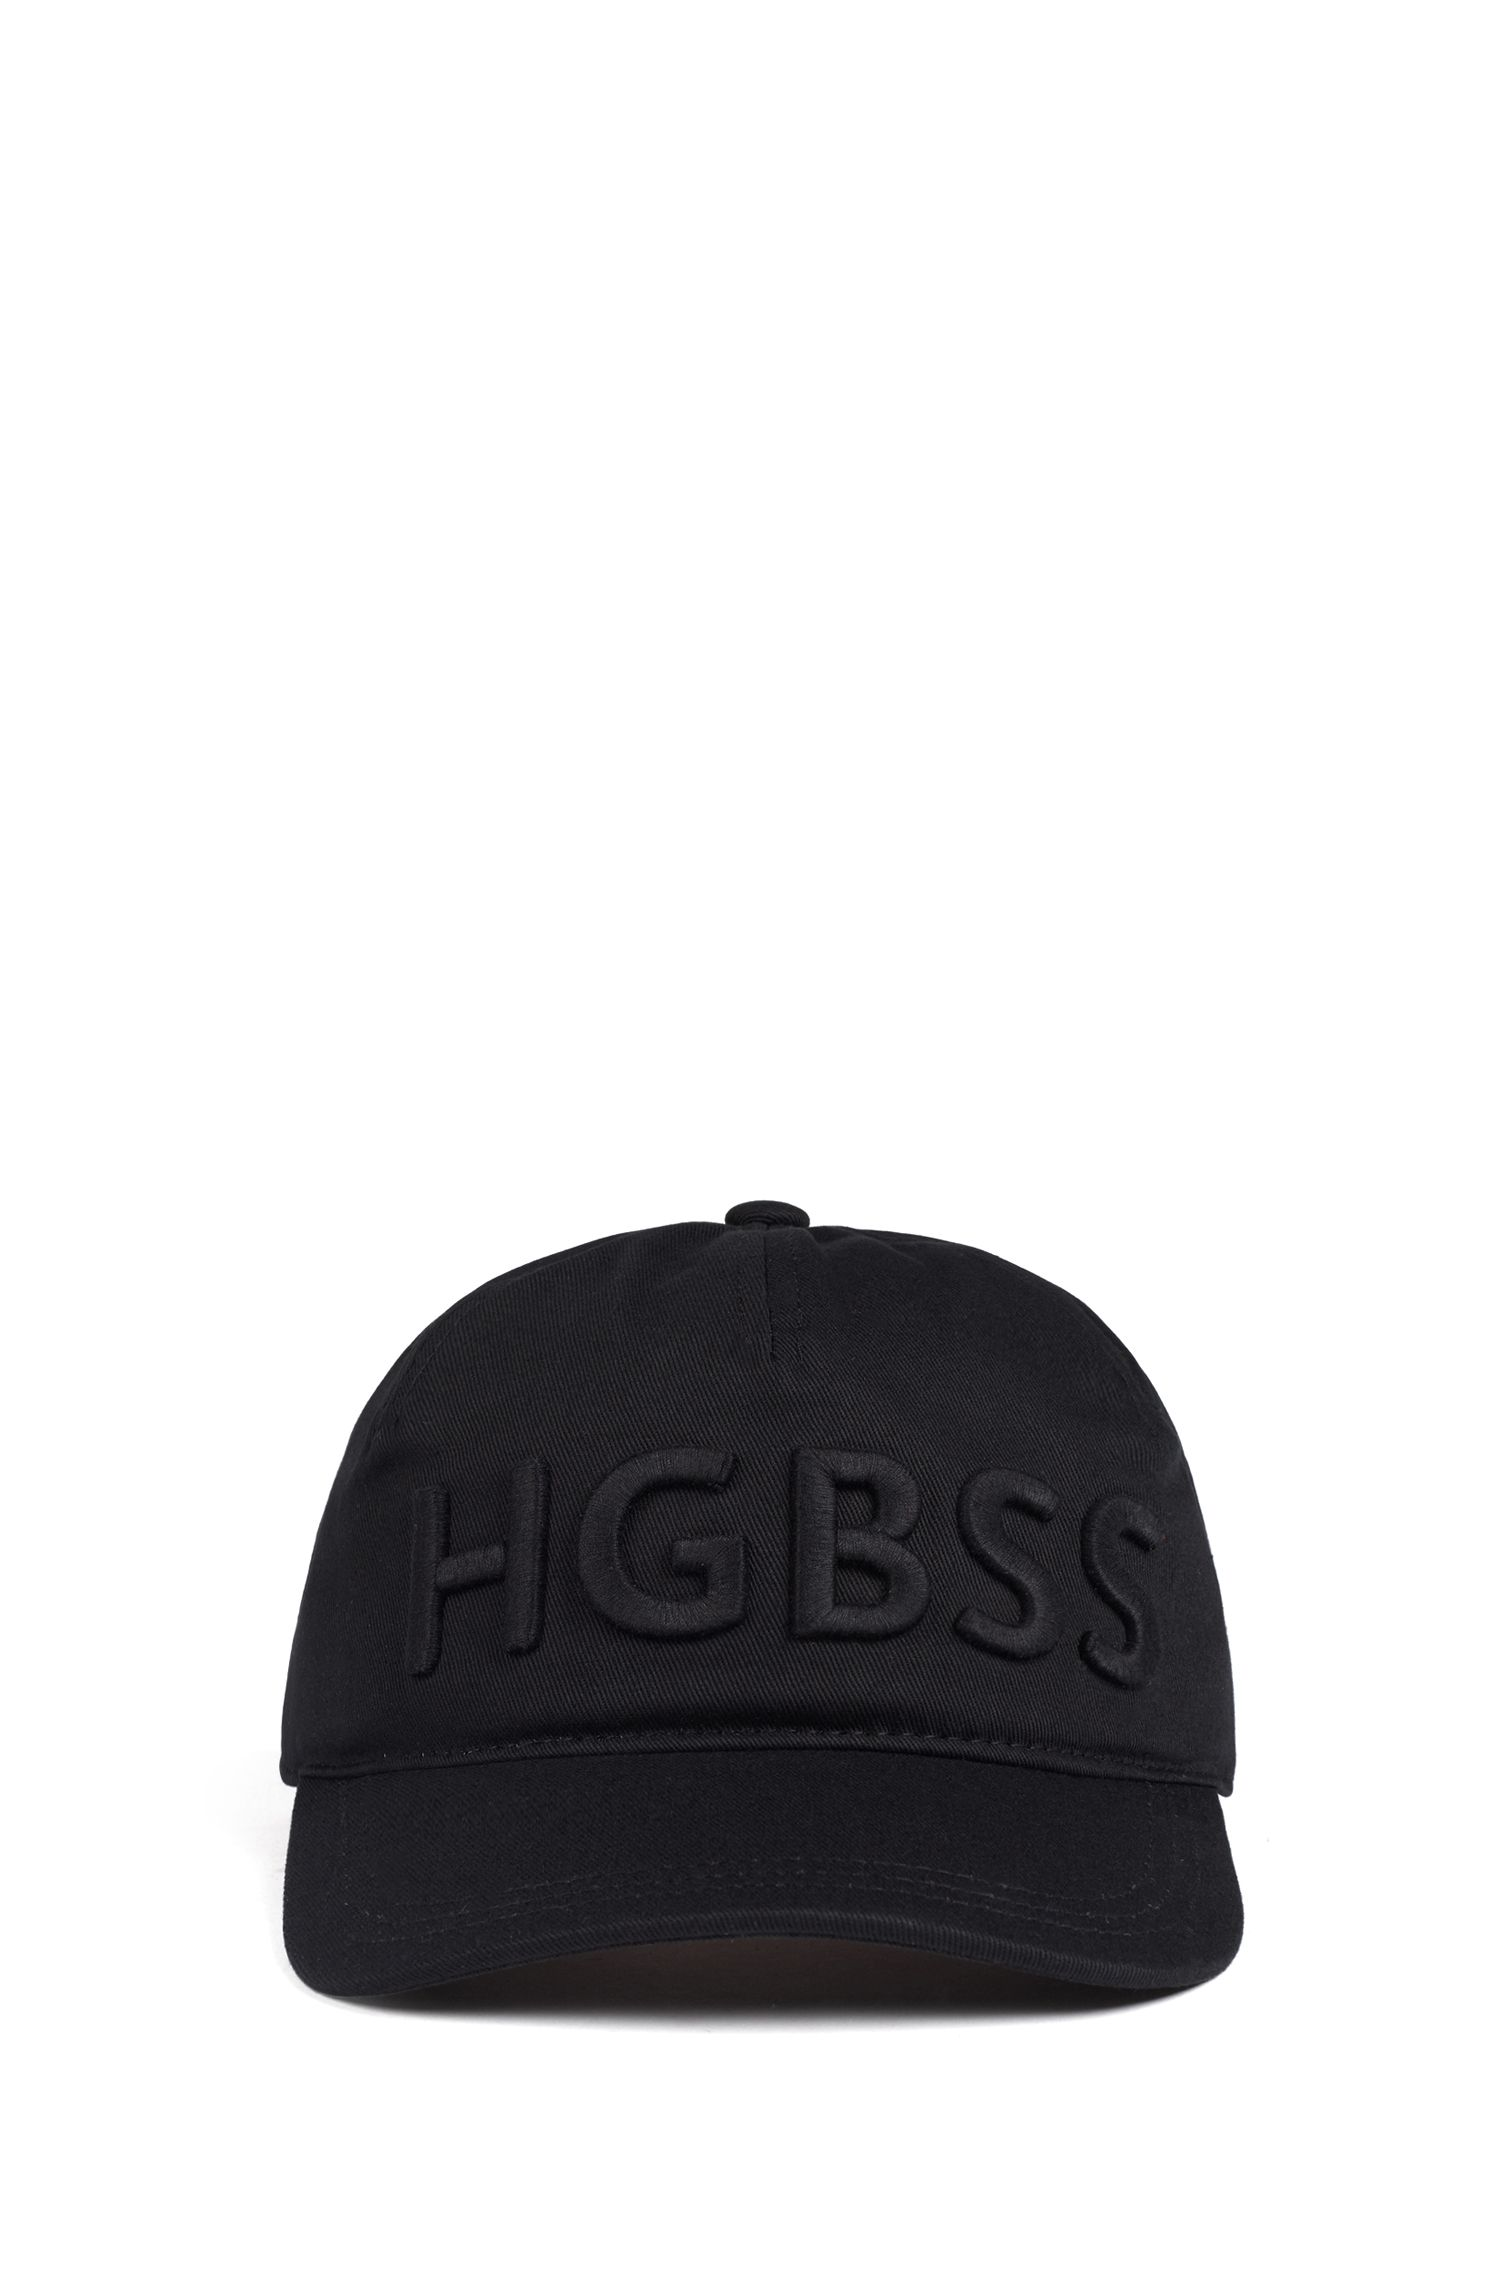 Statement cap in cotton twill with logo lettering, Black